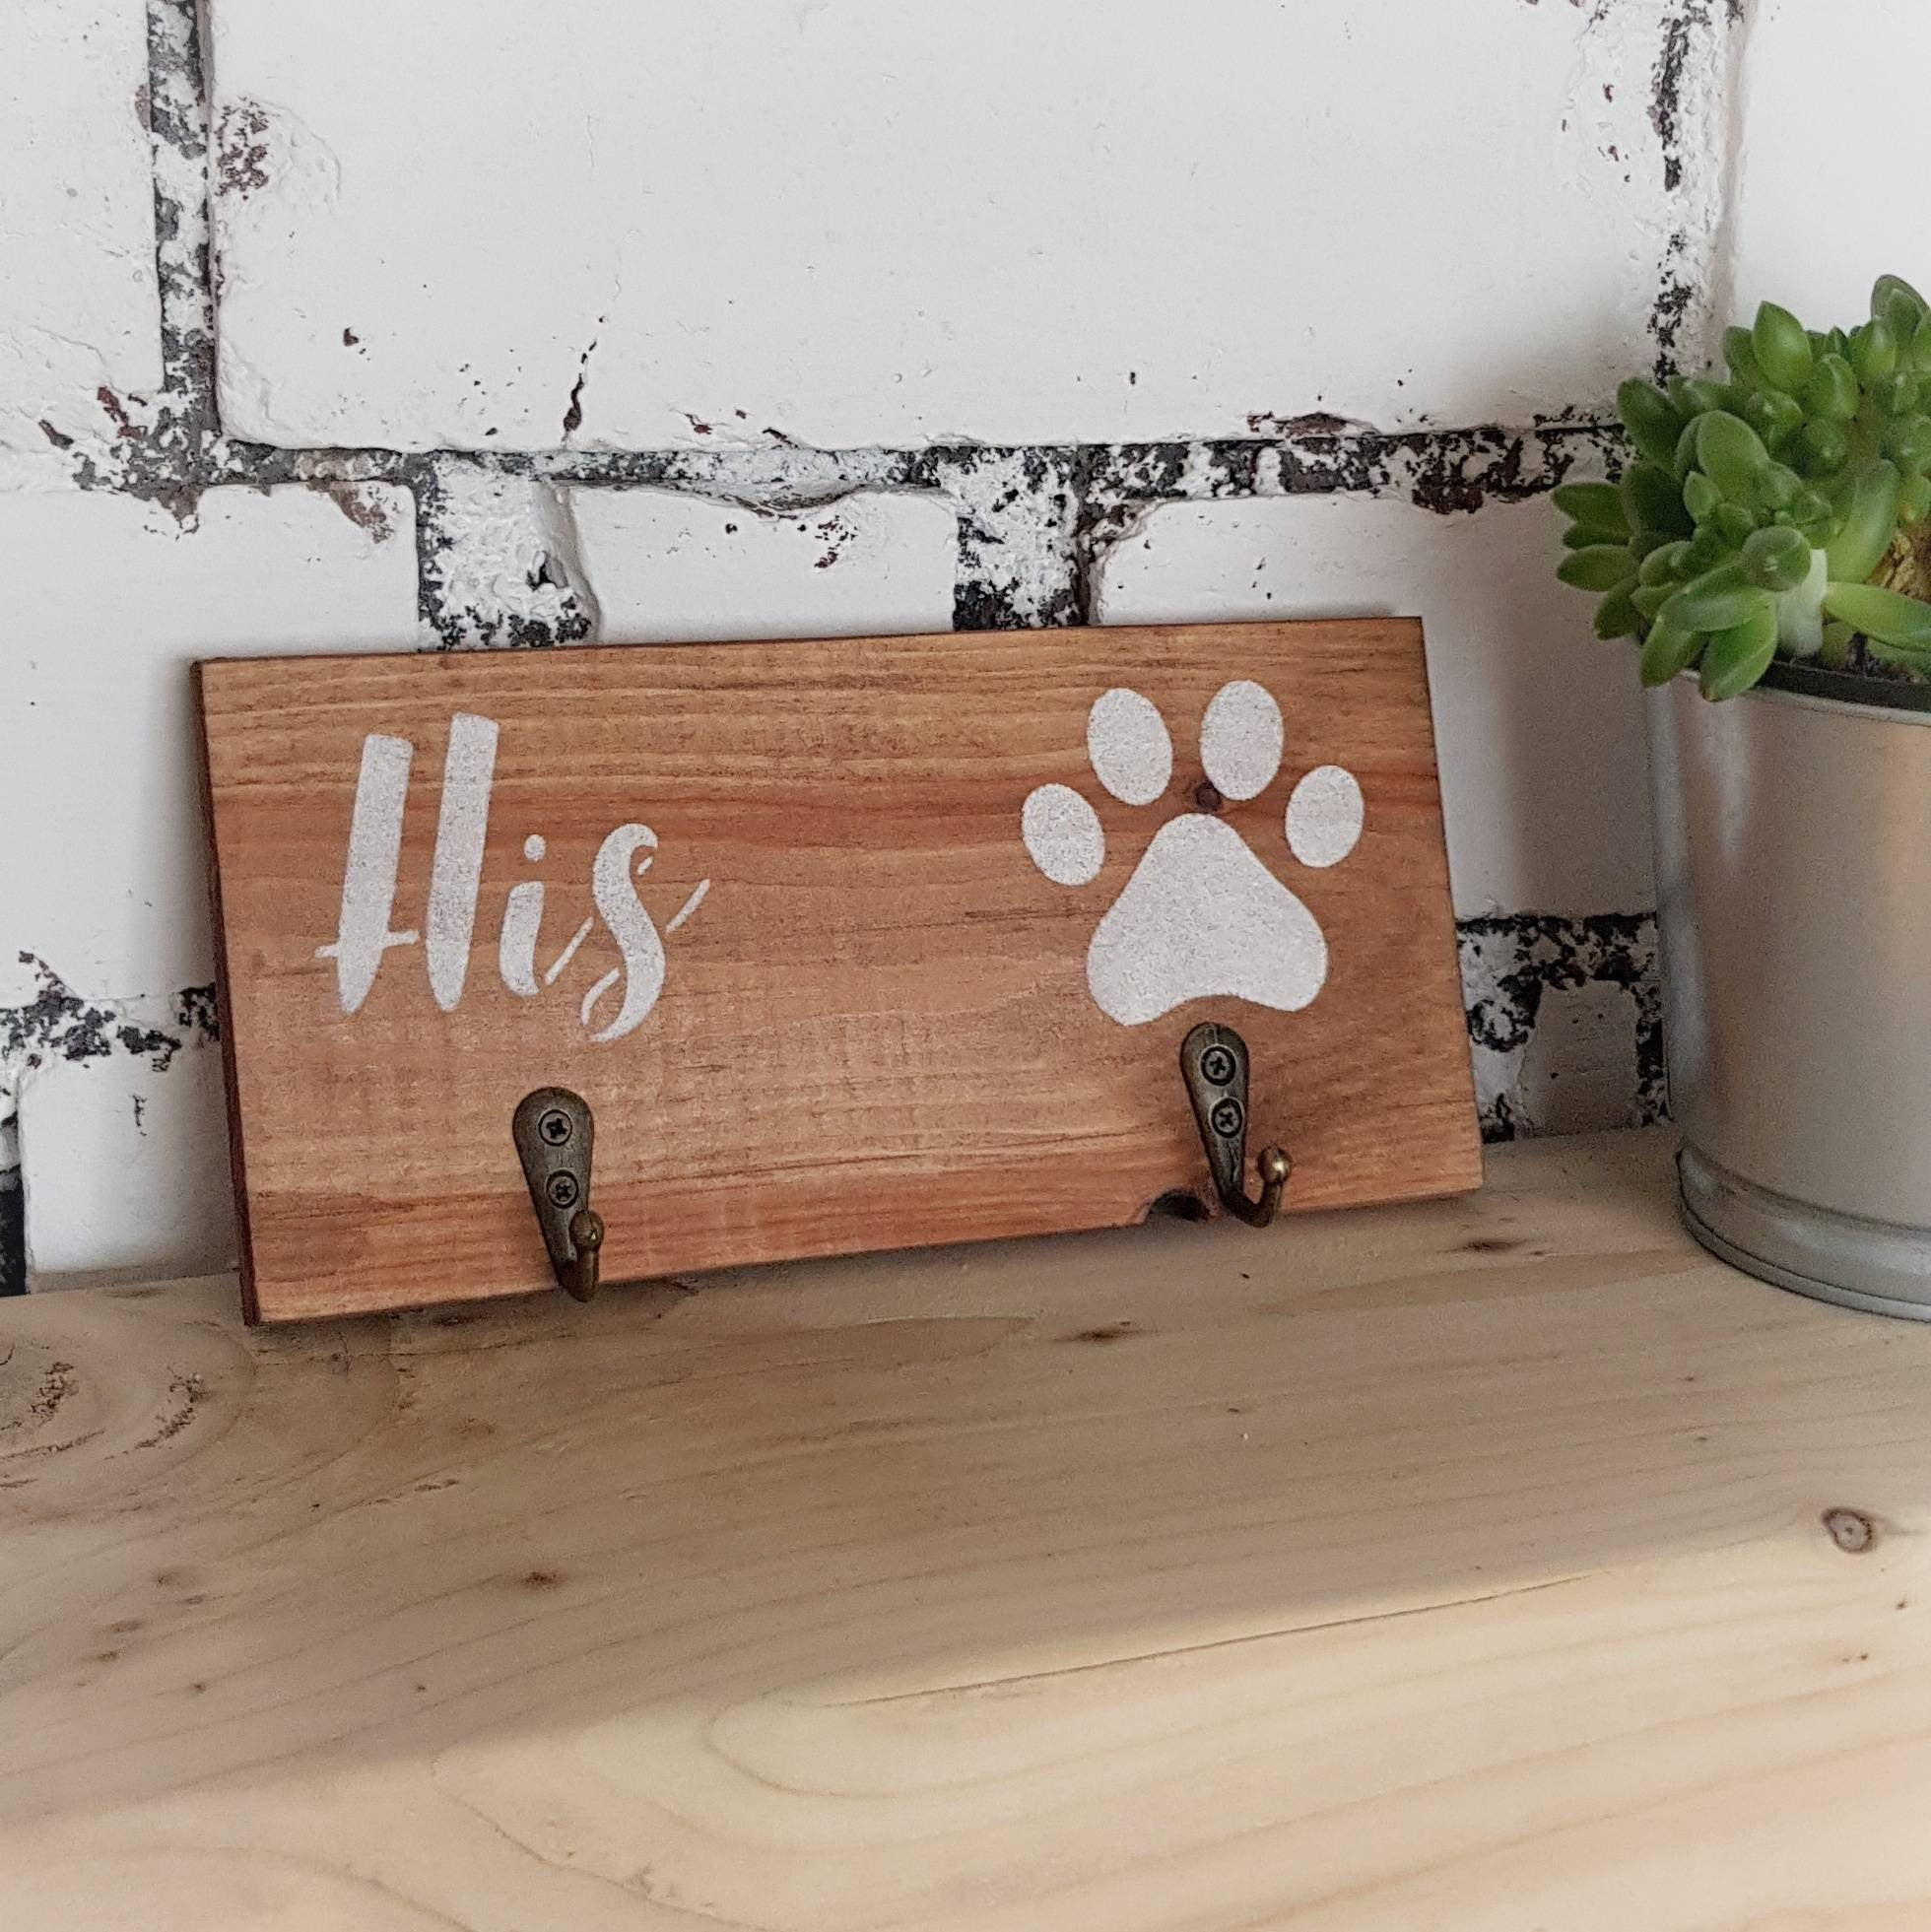 Wooden rustic his hers key holder - Caramel Treasures